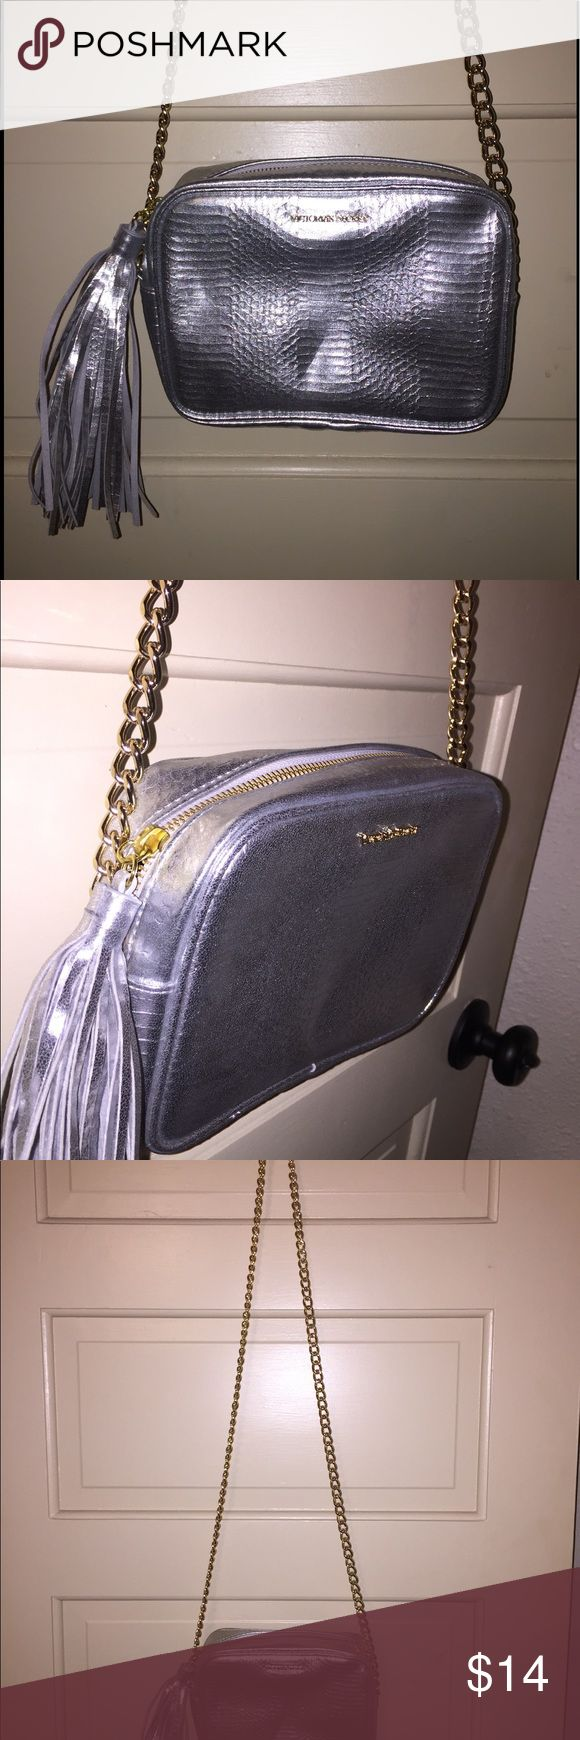 Silver Tassel Bag NWOT Small silver bag with tassel and long gold chain. Victoria's Secret Bags Crossbody Bags